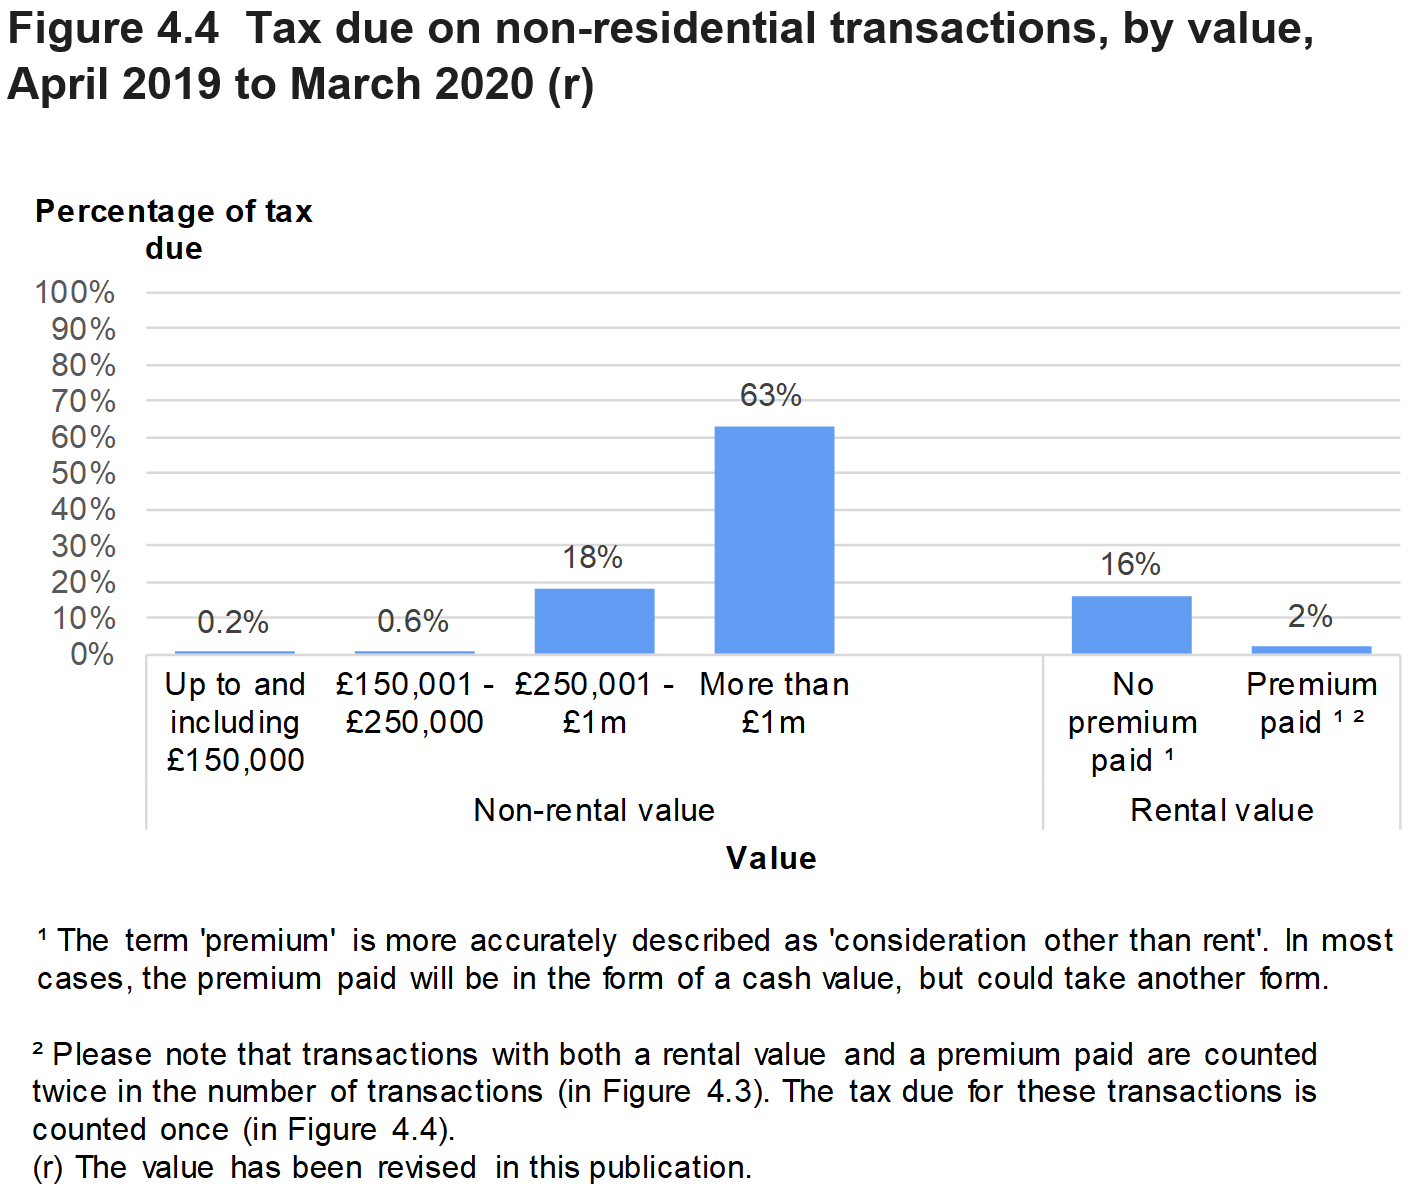 Figure 4.4 shows the amount of tax due on non-residential transactions, by value of the property. Data is presented as the percentage of transactions and relates to transactions effective in April 2019 to March 2020.